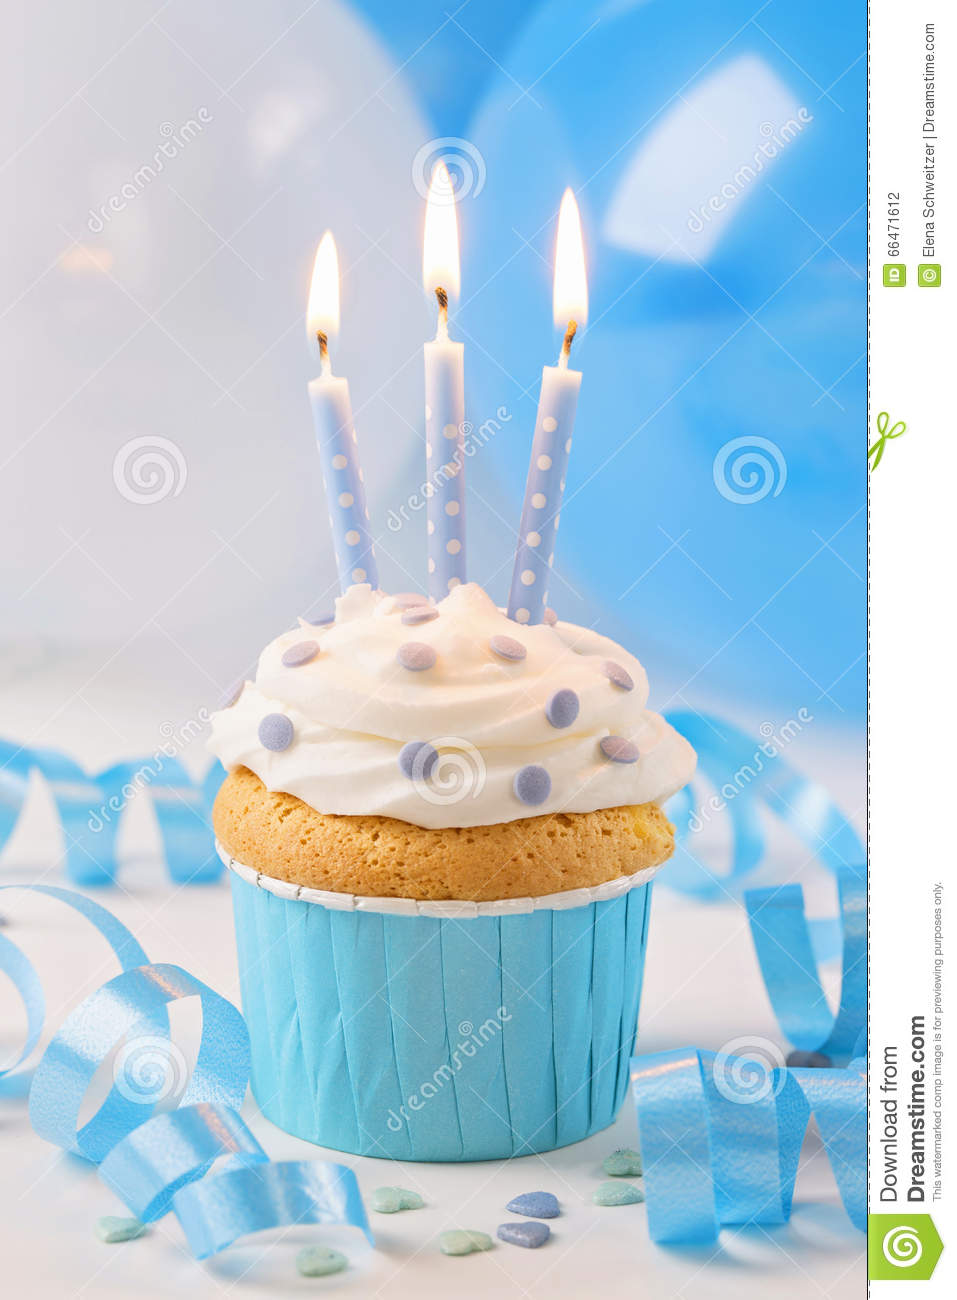 Happy Birthday Cake With Many Candles